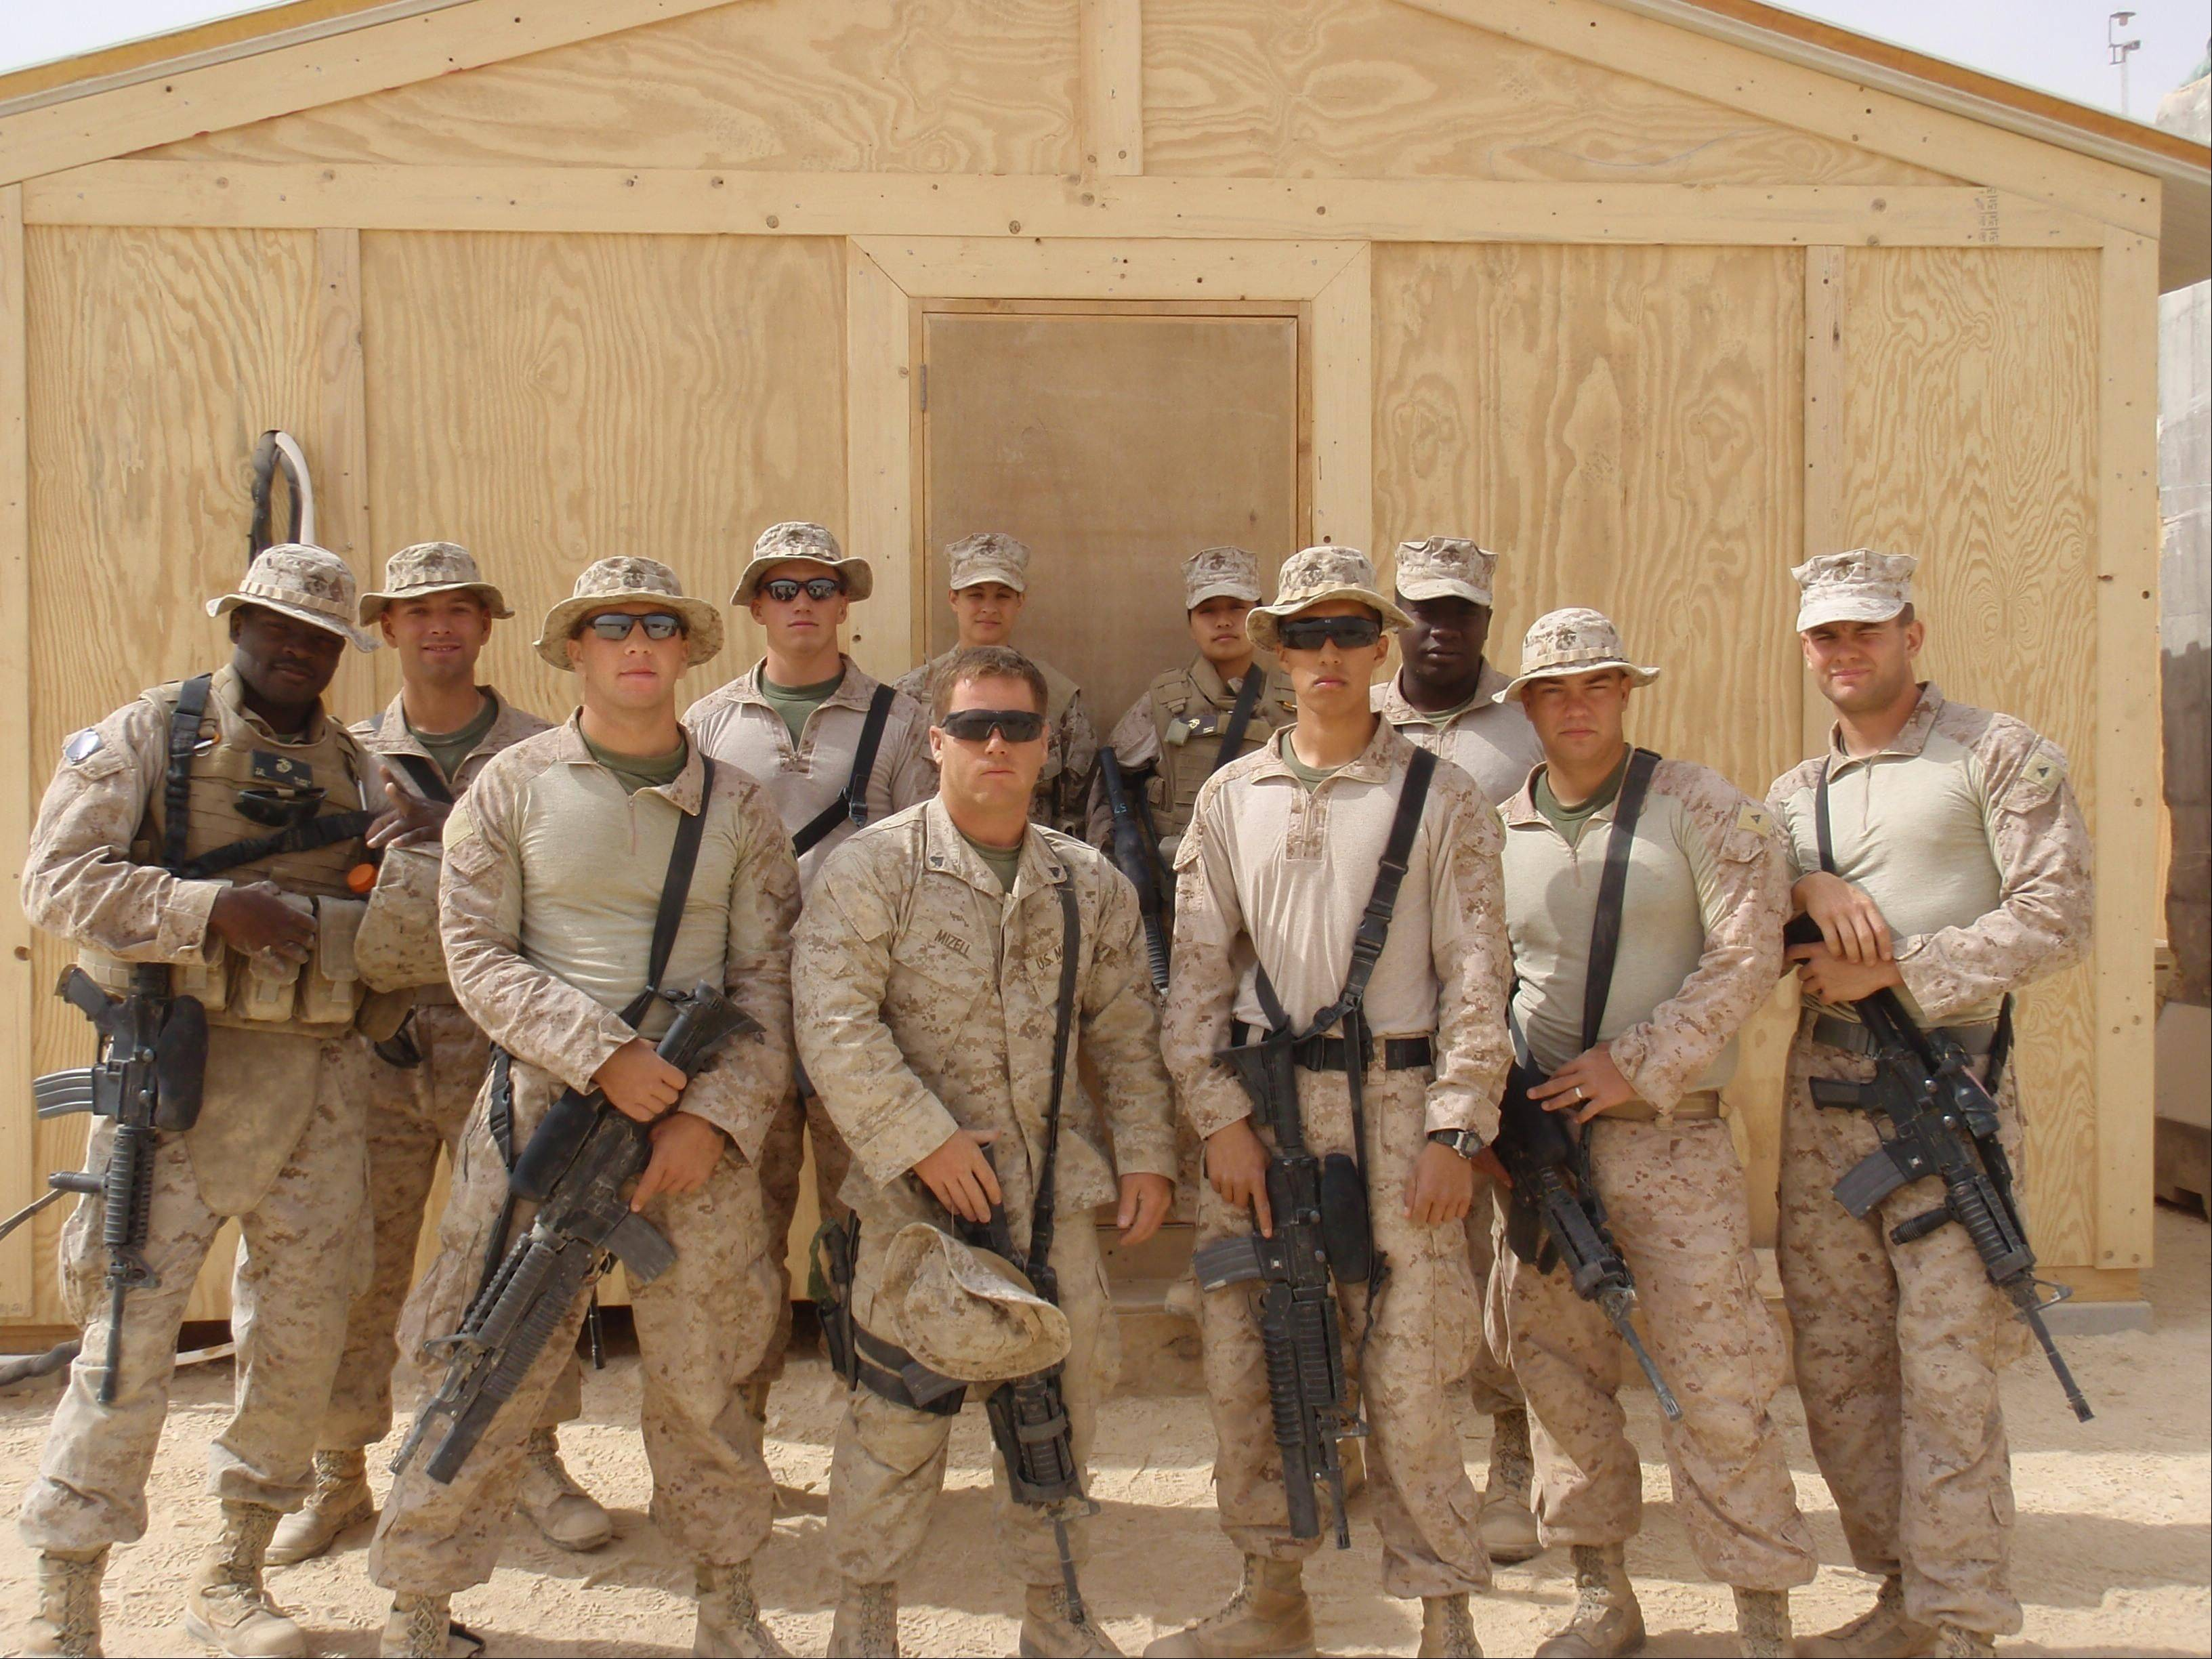 Hoffman Estates native Justin Sher, third from left, and his fellow Marines stand in front of a wooden structure (or SWA Hut) they built outside Haditha, Iraq. The care packages from the Palatine-based Yellow Ribbon Support Group kept the group going in the remote areas of their missions.